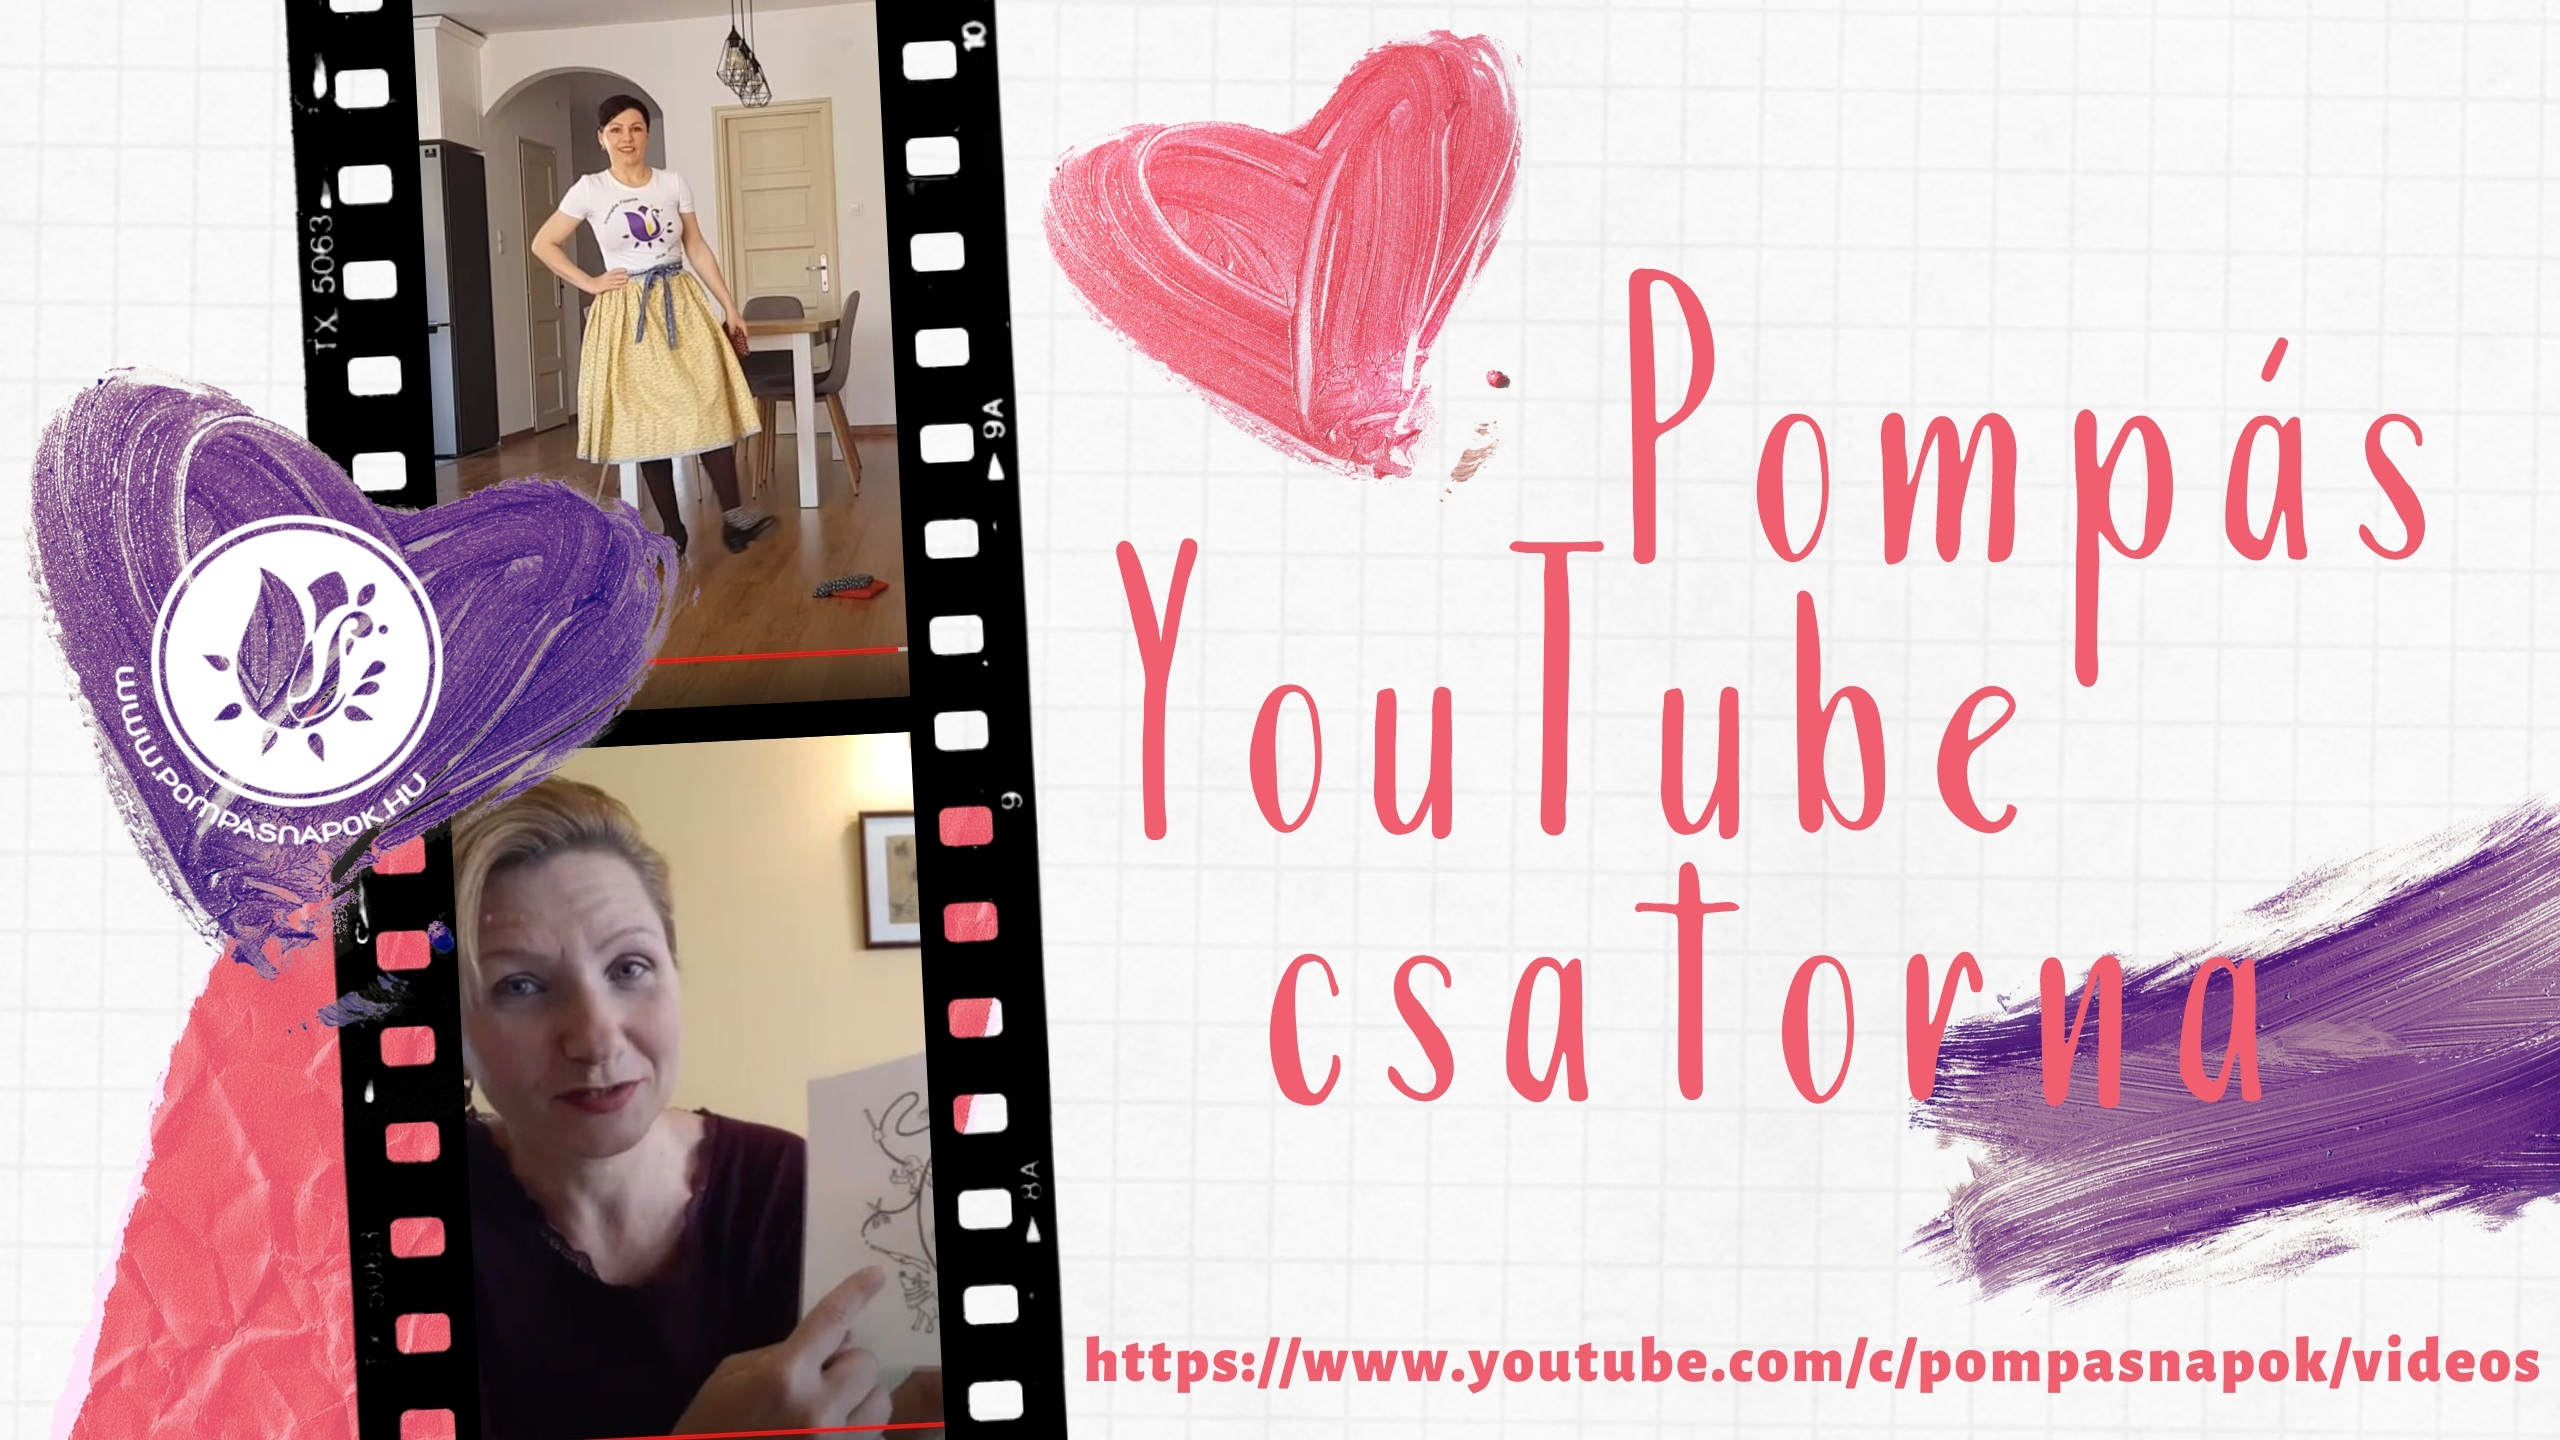 pink_and_brown_photo_mom_youtube_channel_art.jpg